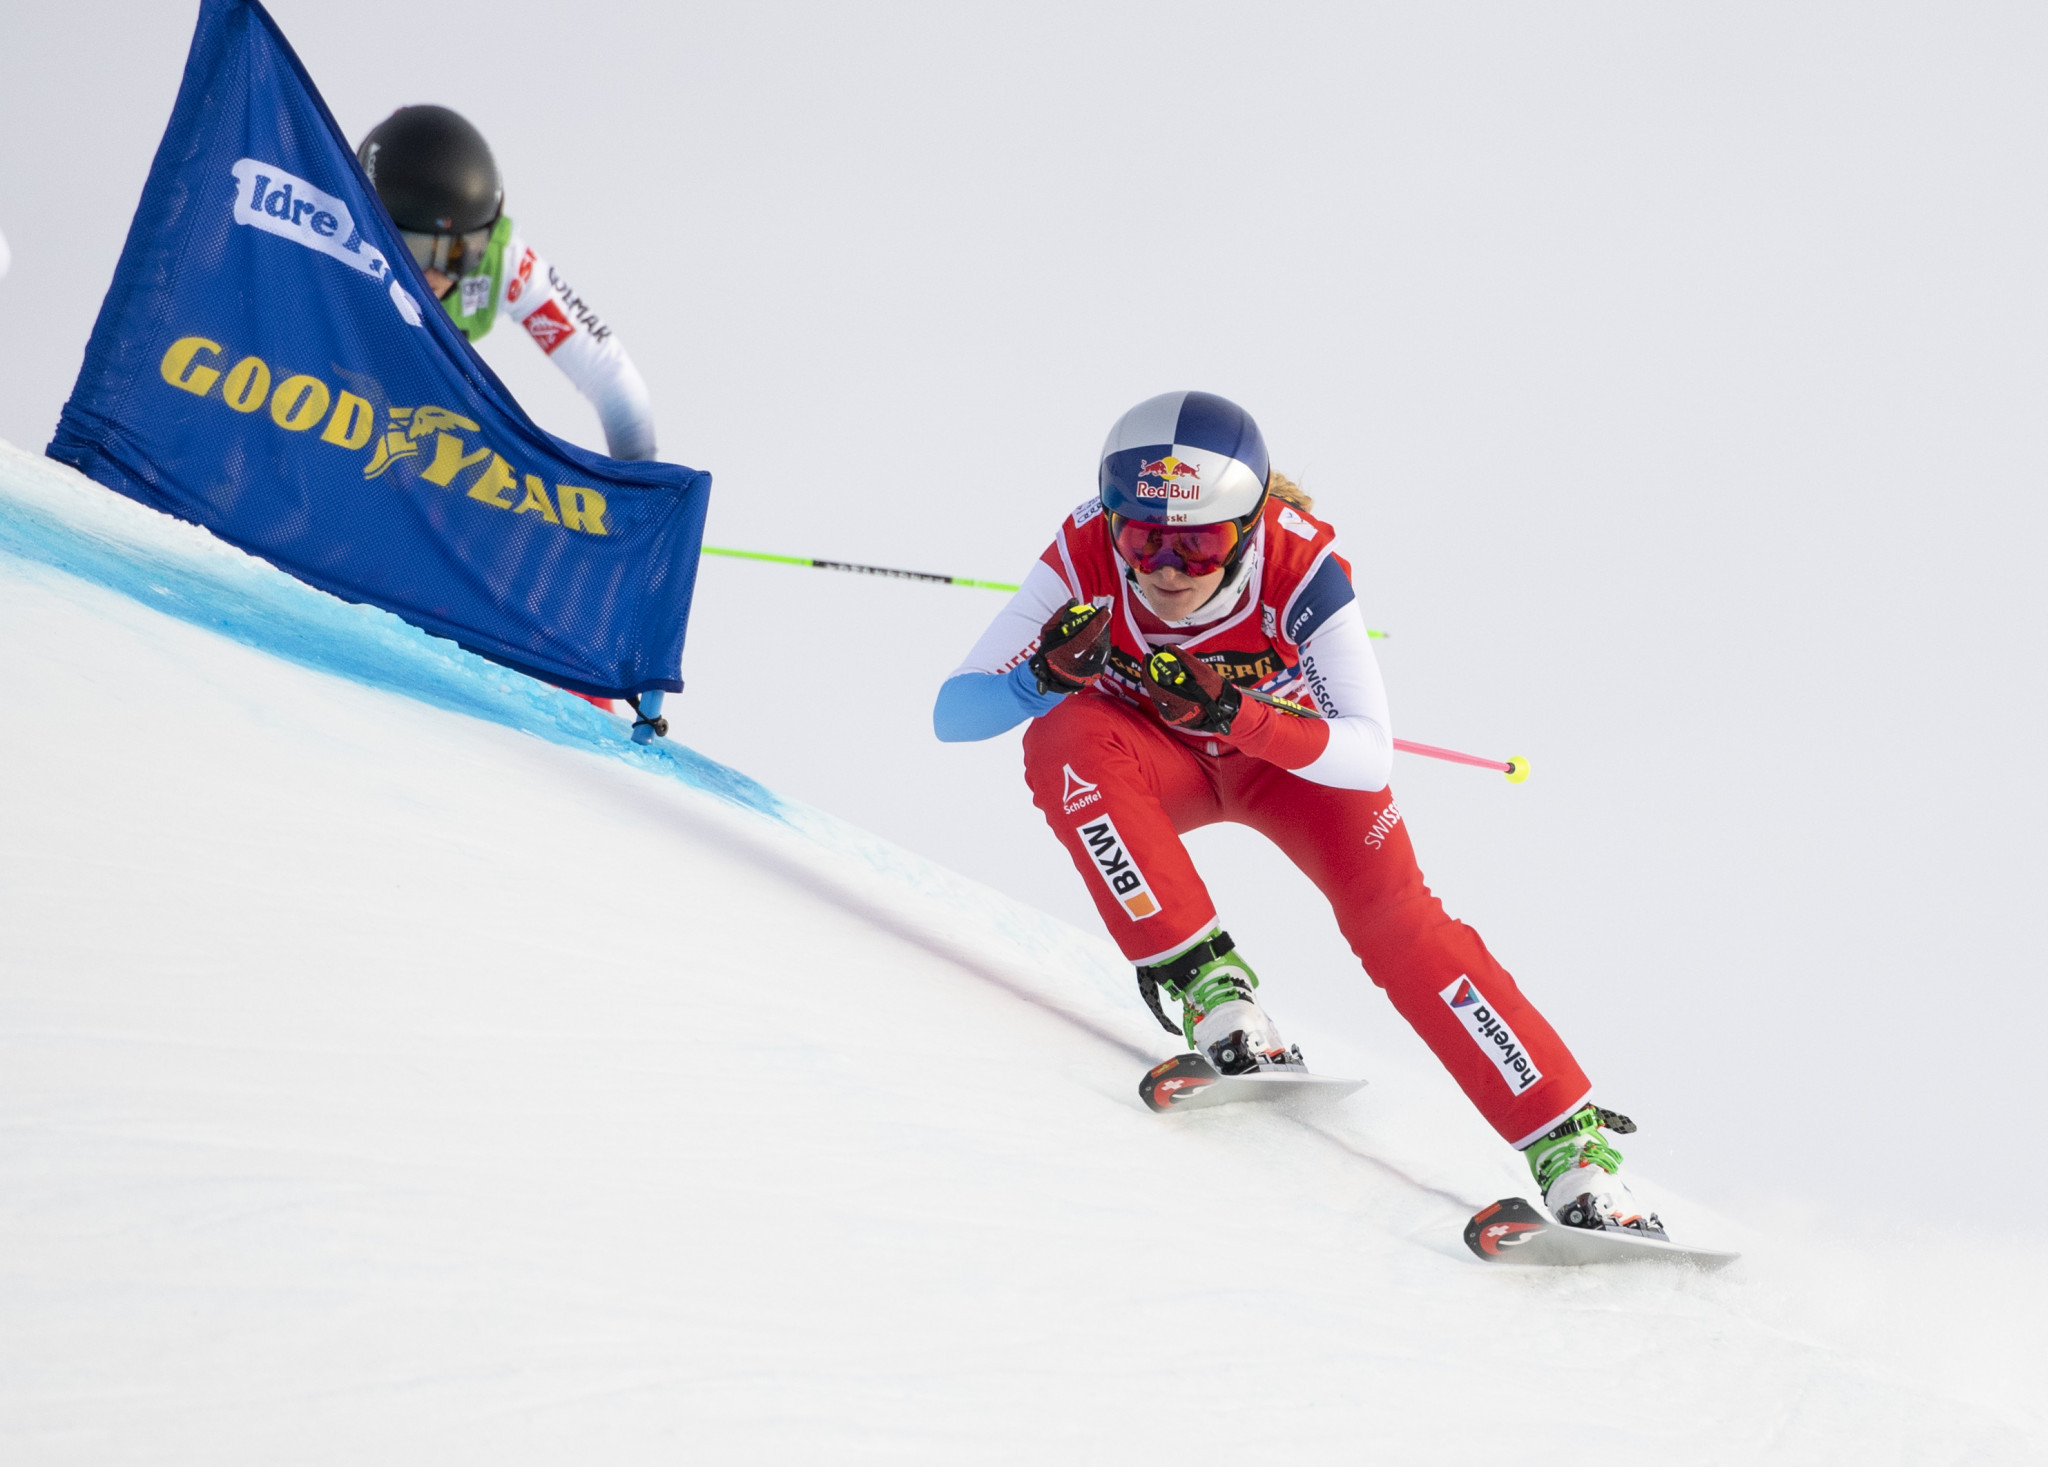 Smith ties record for FIS Ski Cross World Cup victories in Idre Fjäll